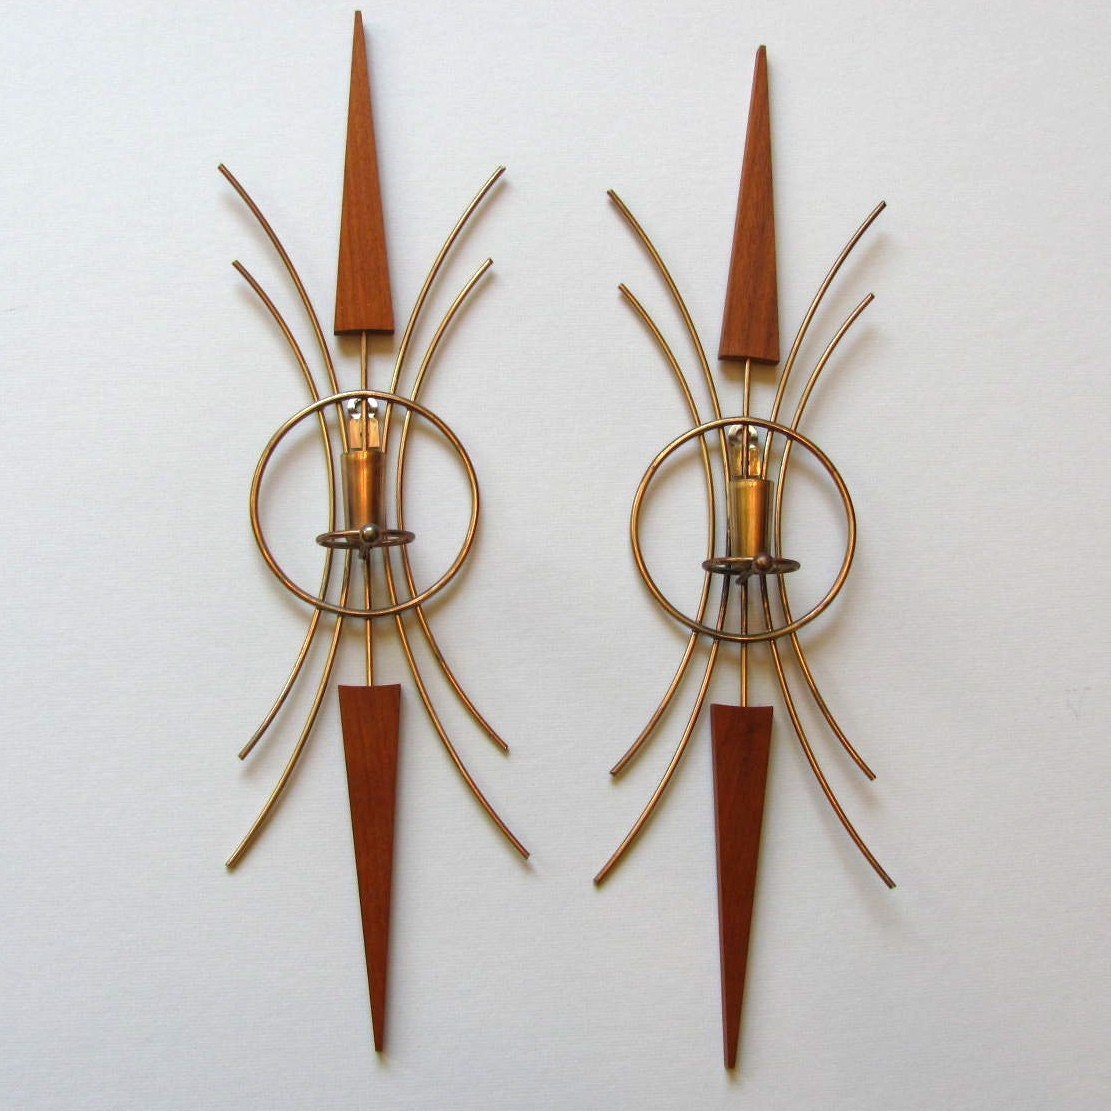 Wall Sconces Etsy : Vintage Danish Modern Wall Candle Sconces by DodadChick on Etsy